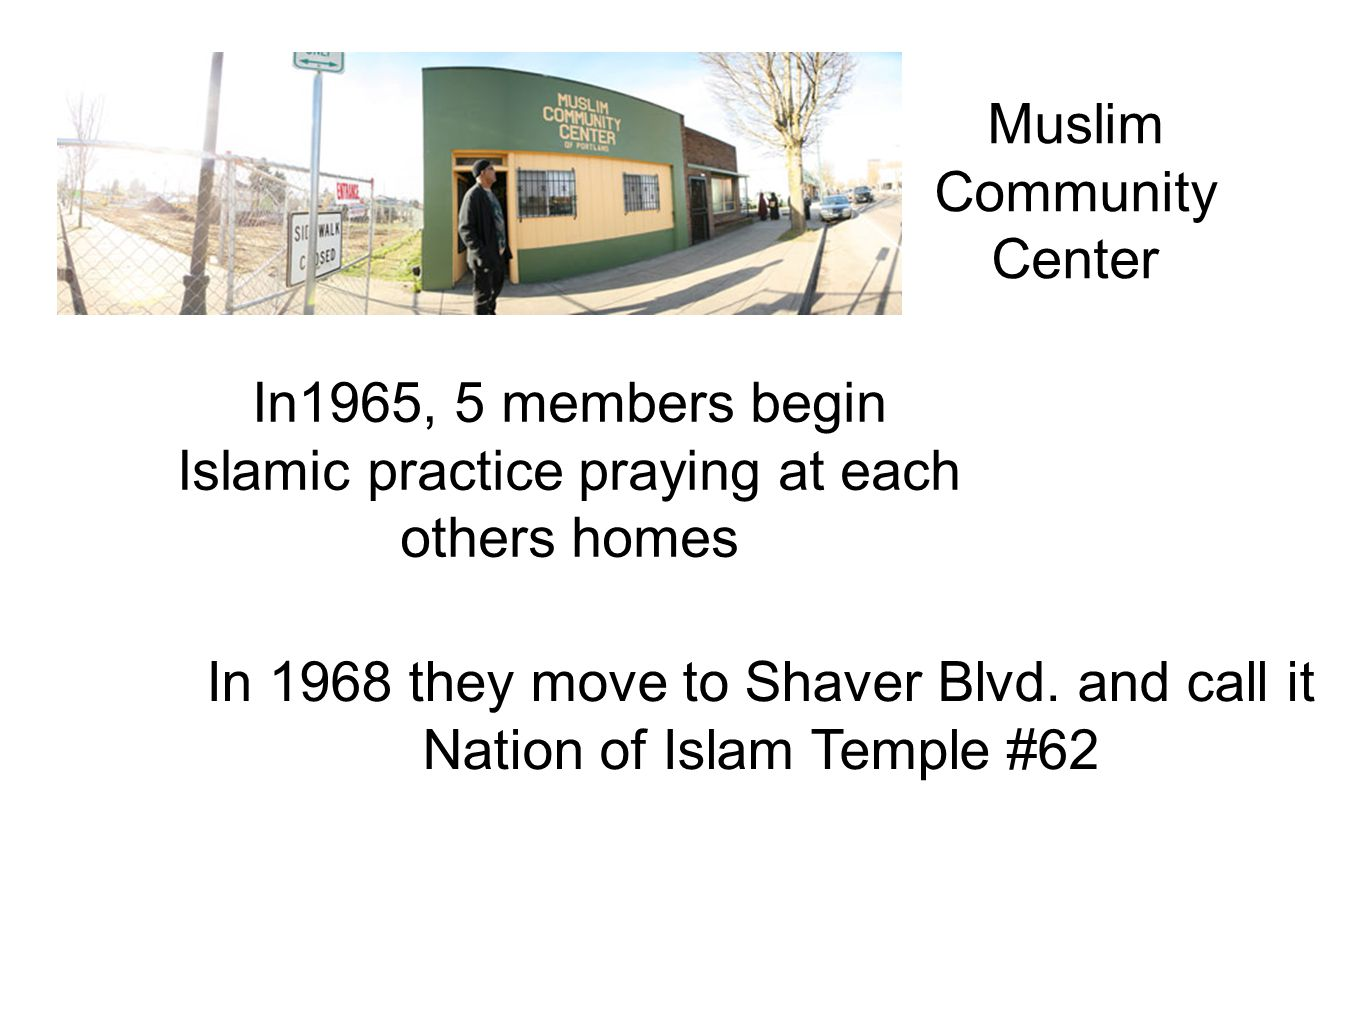 Muslim Community Center In1965, 5 members begin Islamic practice praying at each others homes In 1968 they move to Shaver Blvd. and call it Nation of